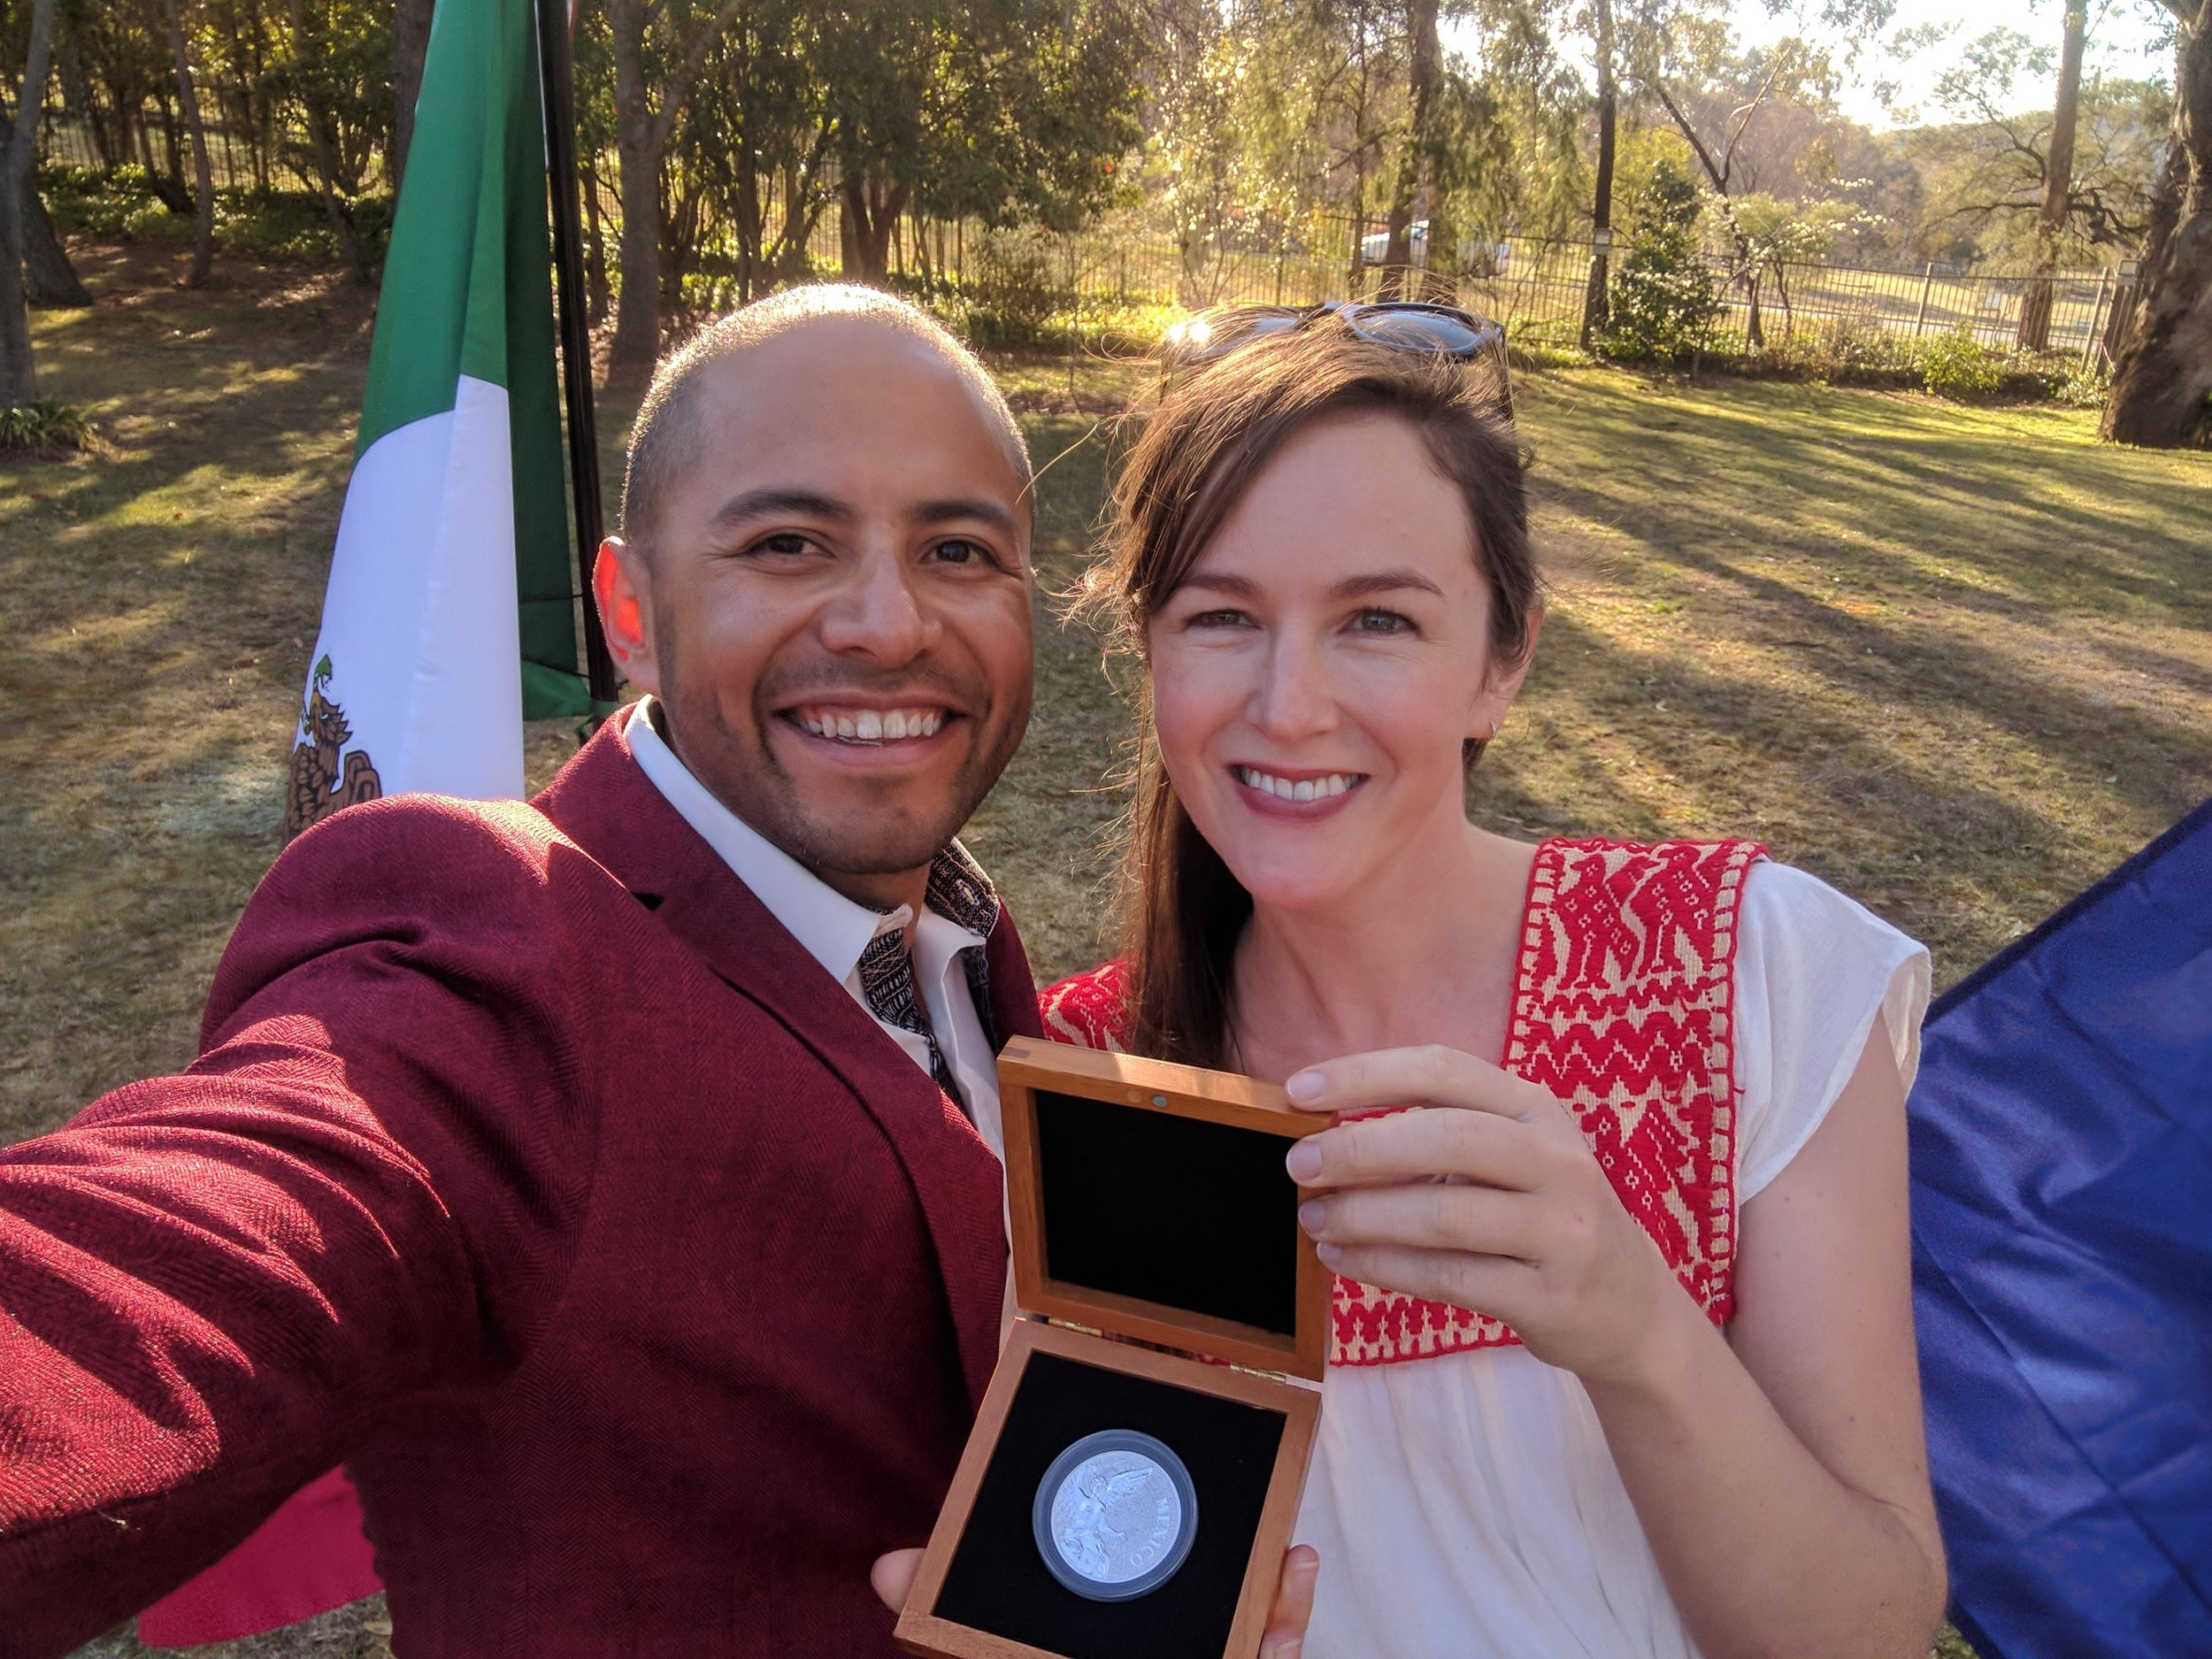 Gerardo and Diana - The day Gerardo was awarded the Mexican Federal Government's award for Outstanding Mexican Abroad